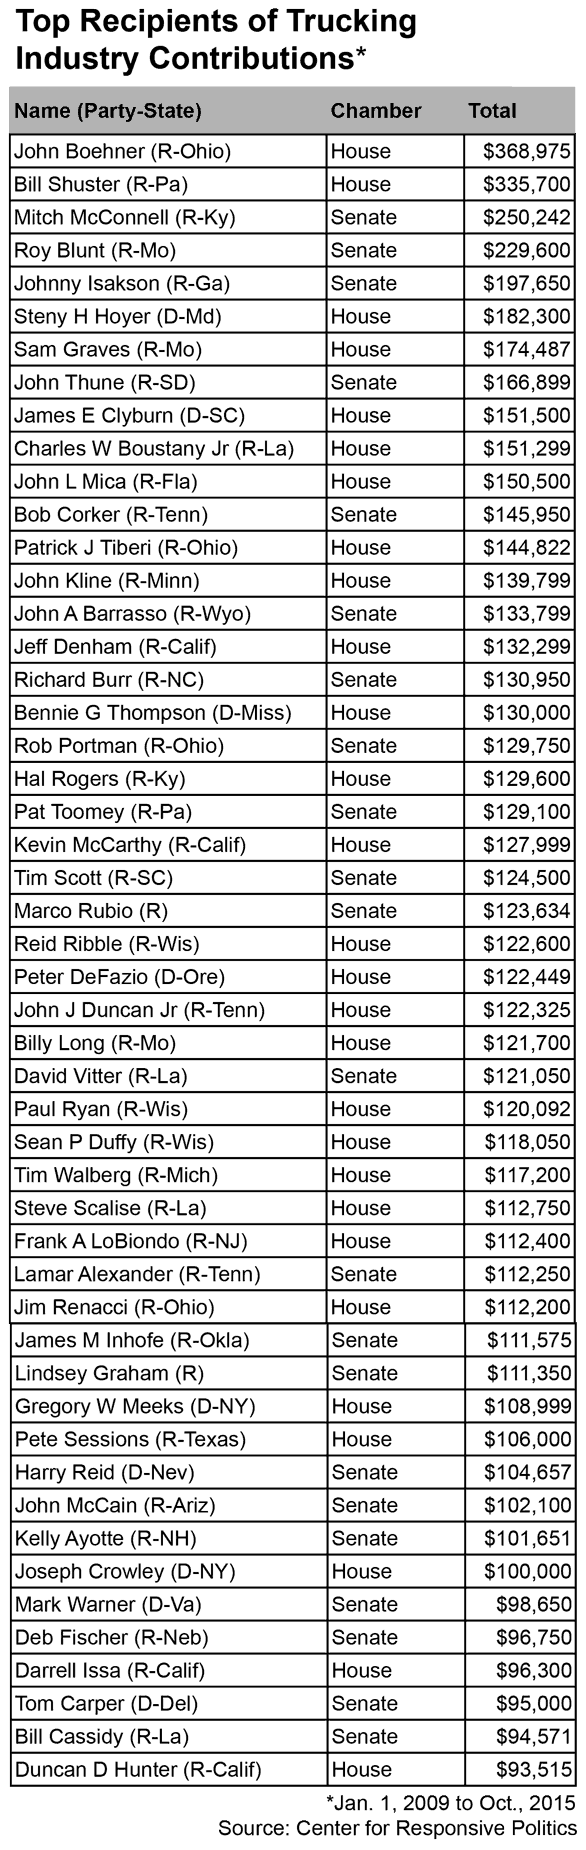 top-recipients